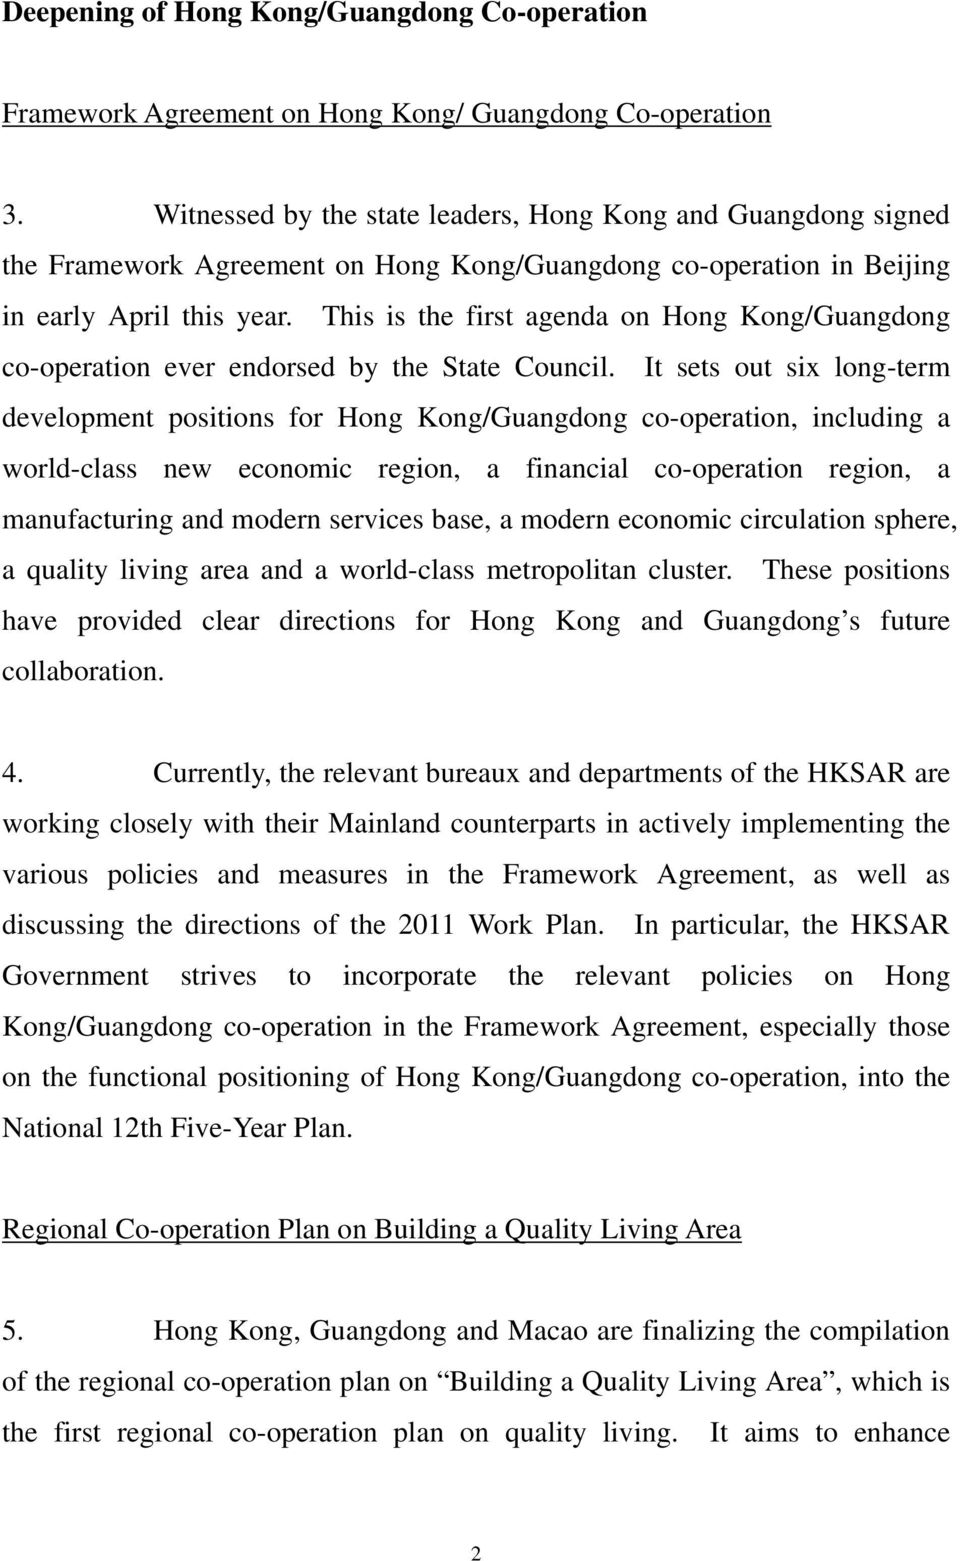 This is the first agenda on Hong Kong/Guangdong co-operation ever endorsed by the State Council.